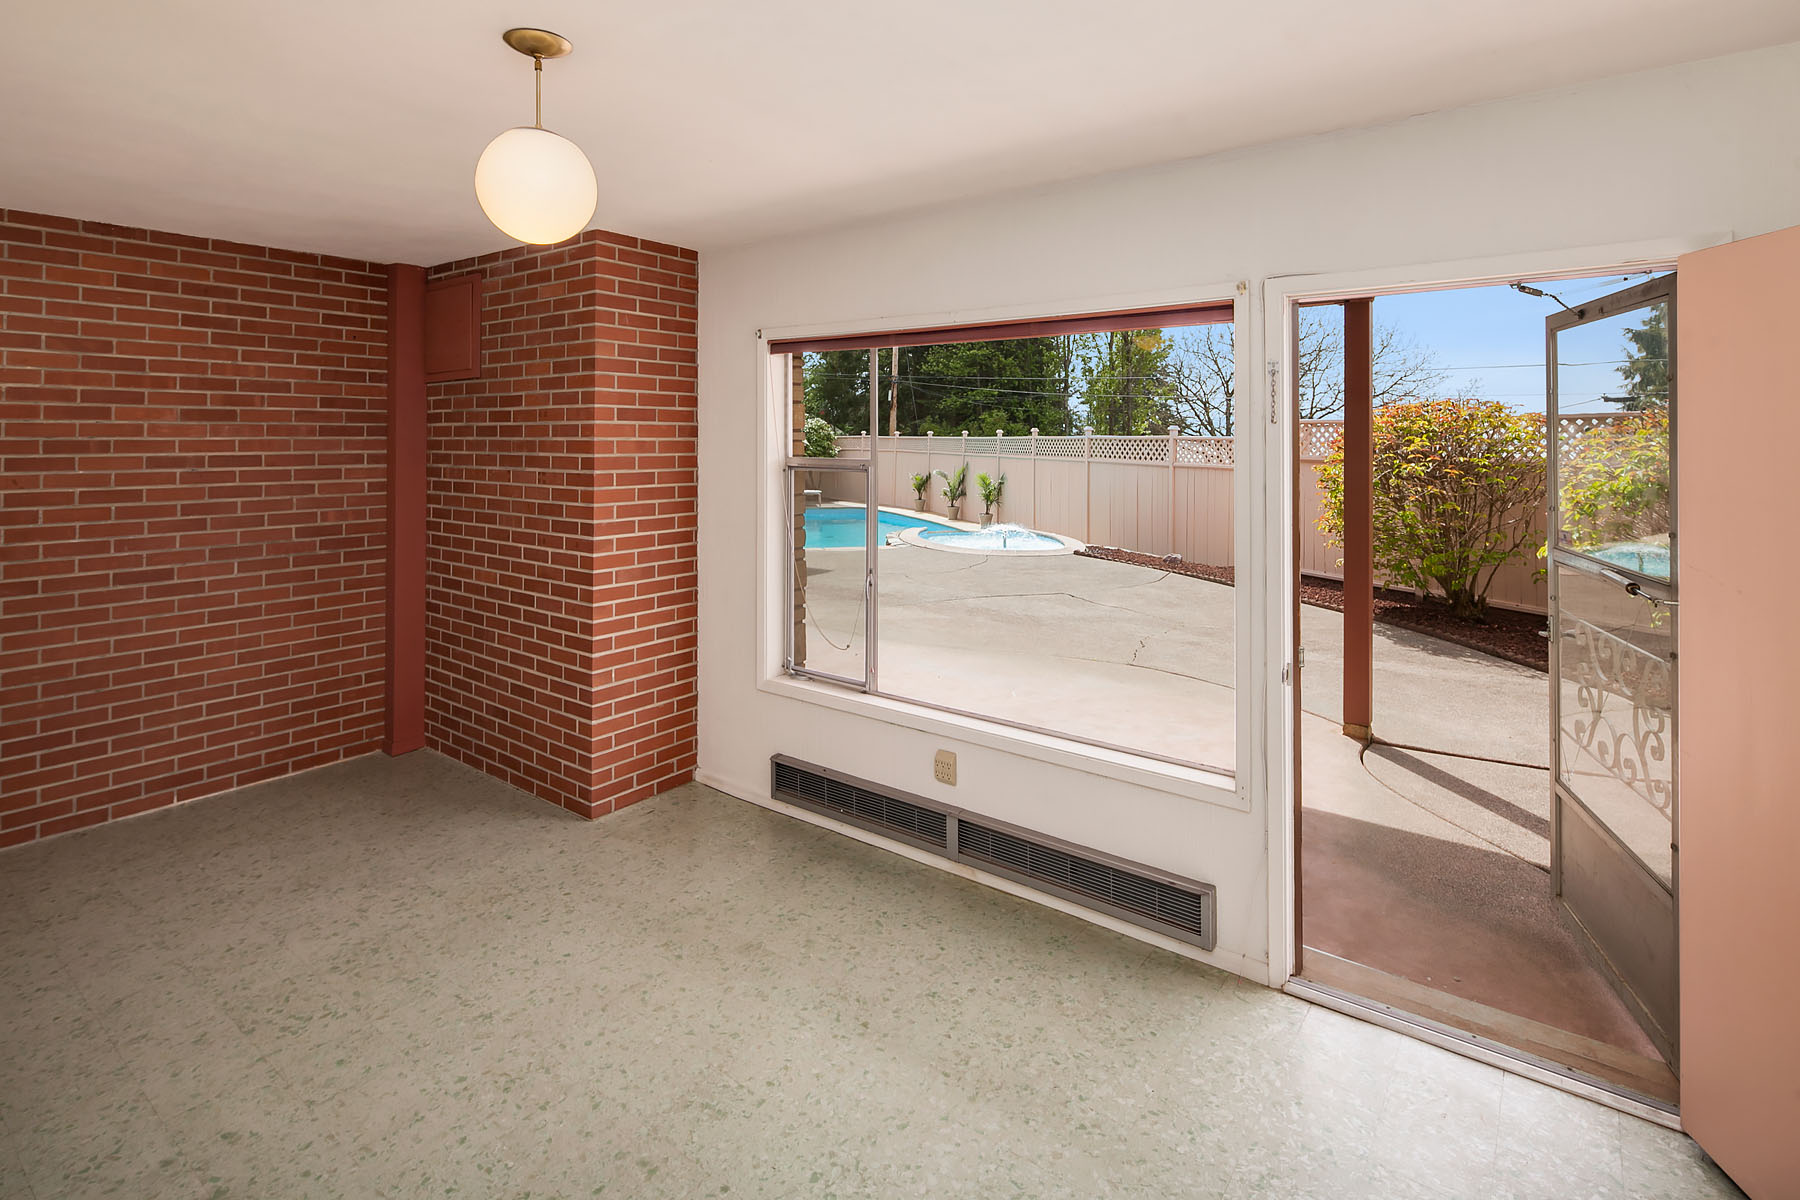 Mid-century home in Bellingham